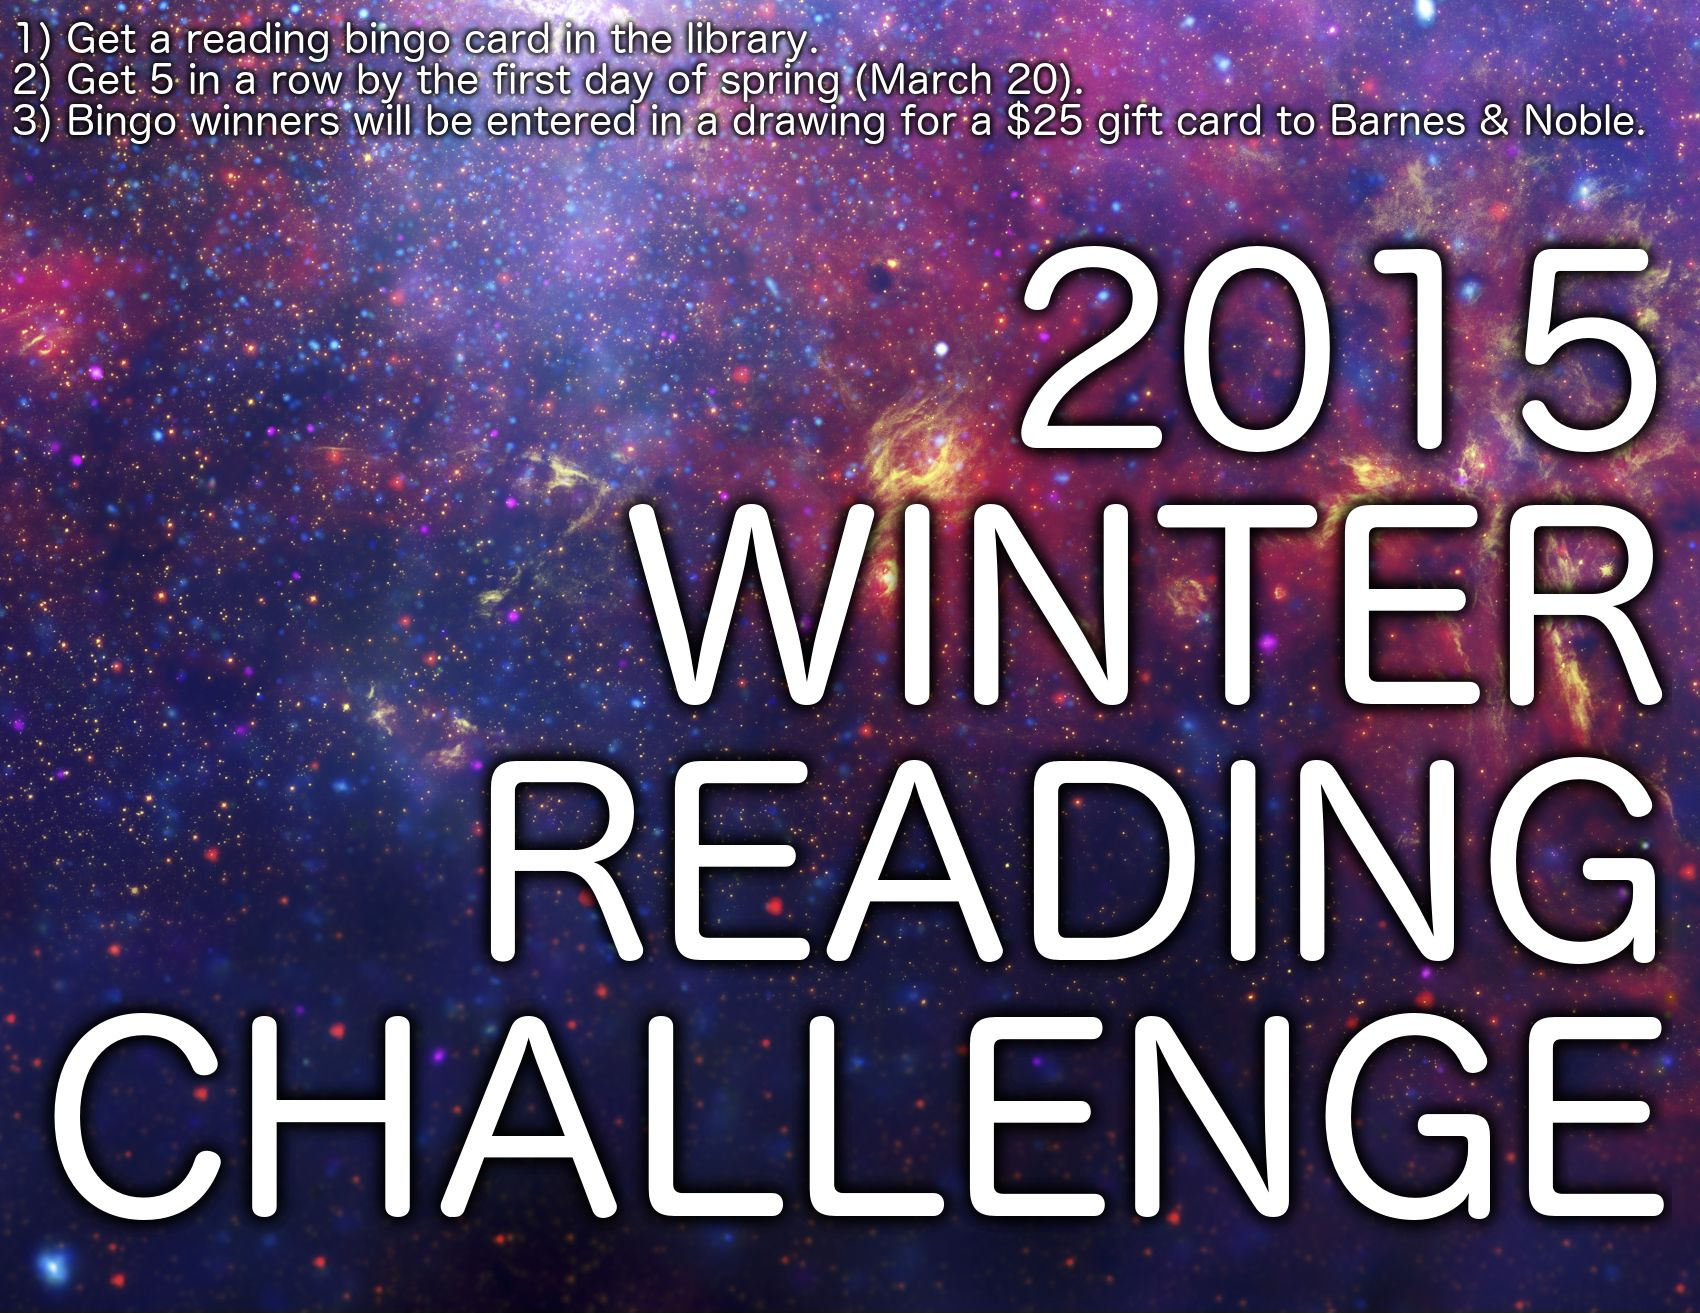 The Winter Reading Challenge Is On Get 5 In A Row On A Reading